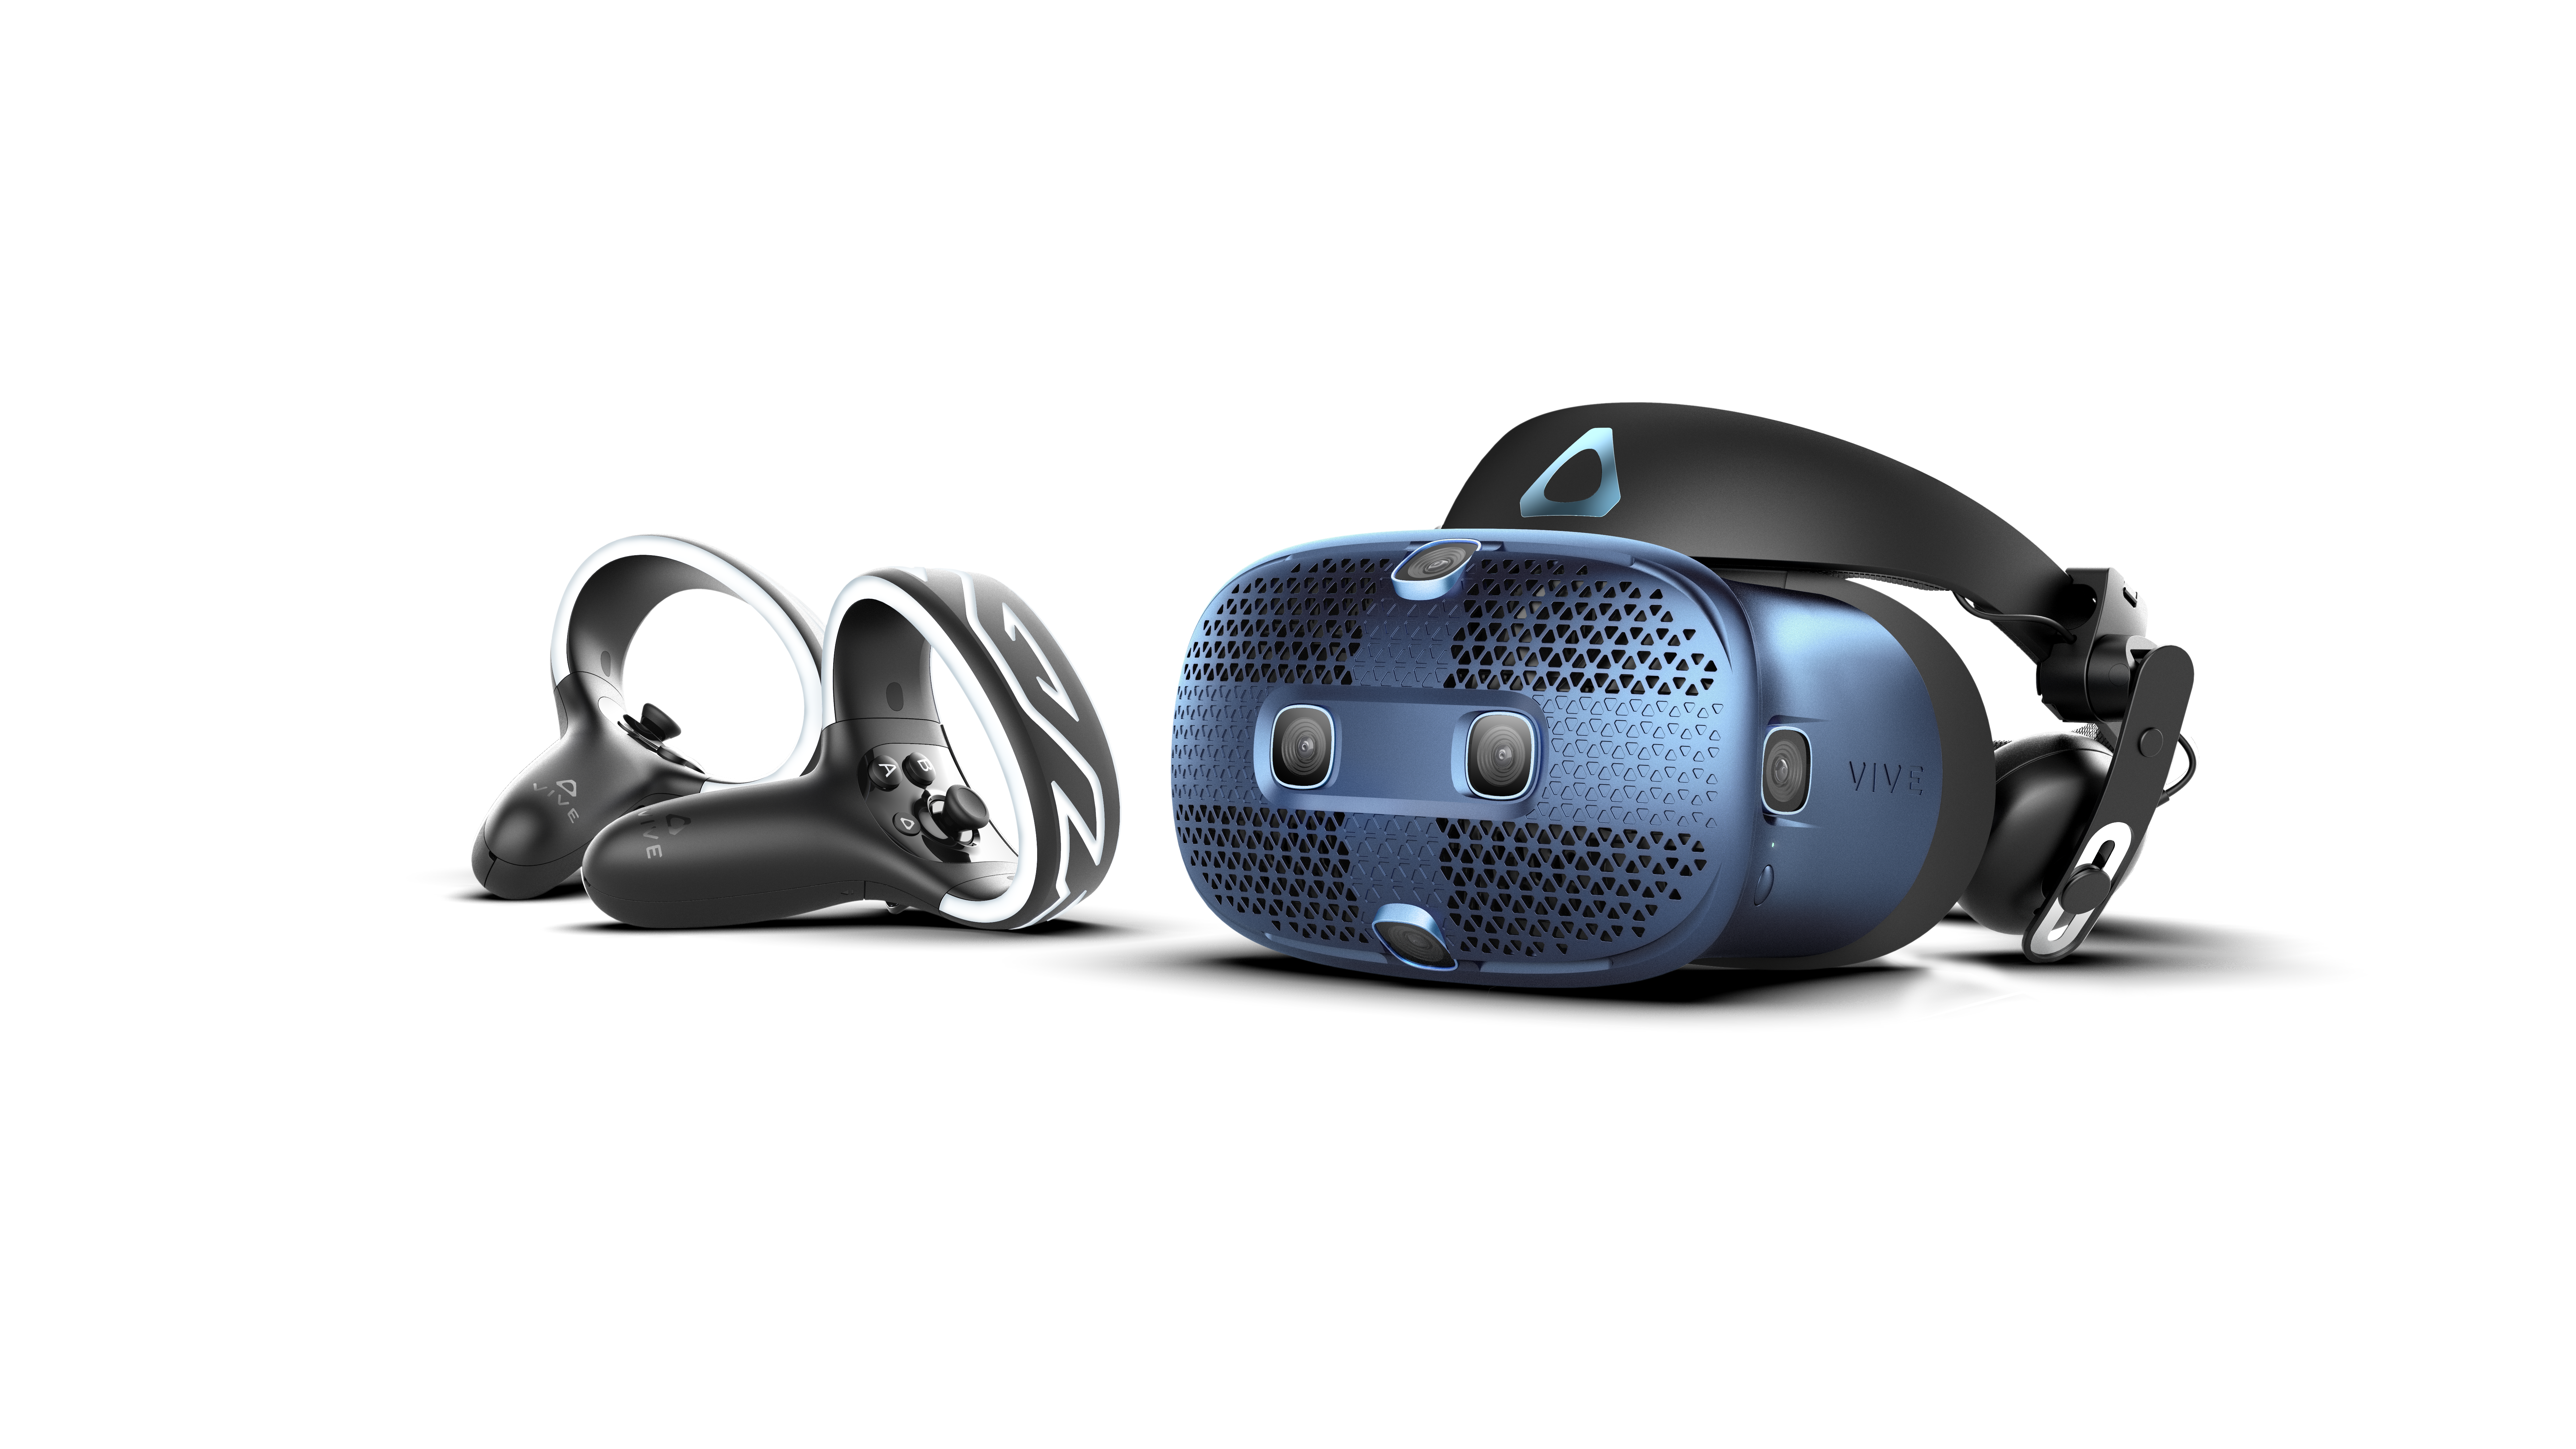 VR Headset - VIVE Cosmos and Controllers